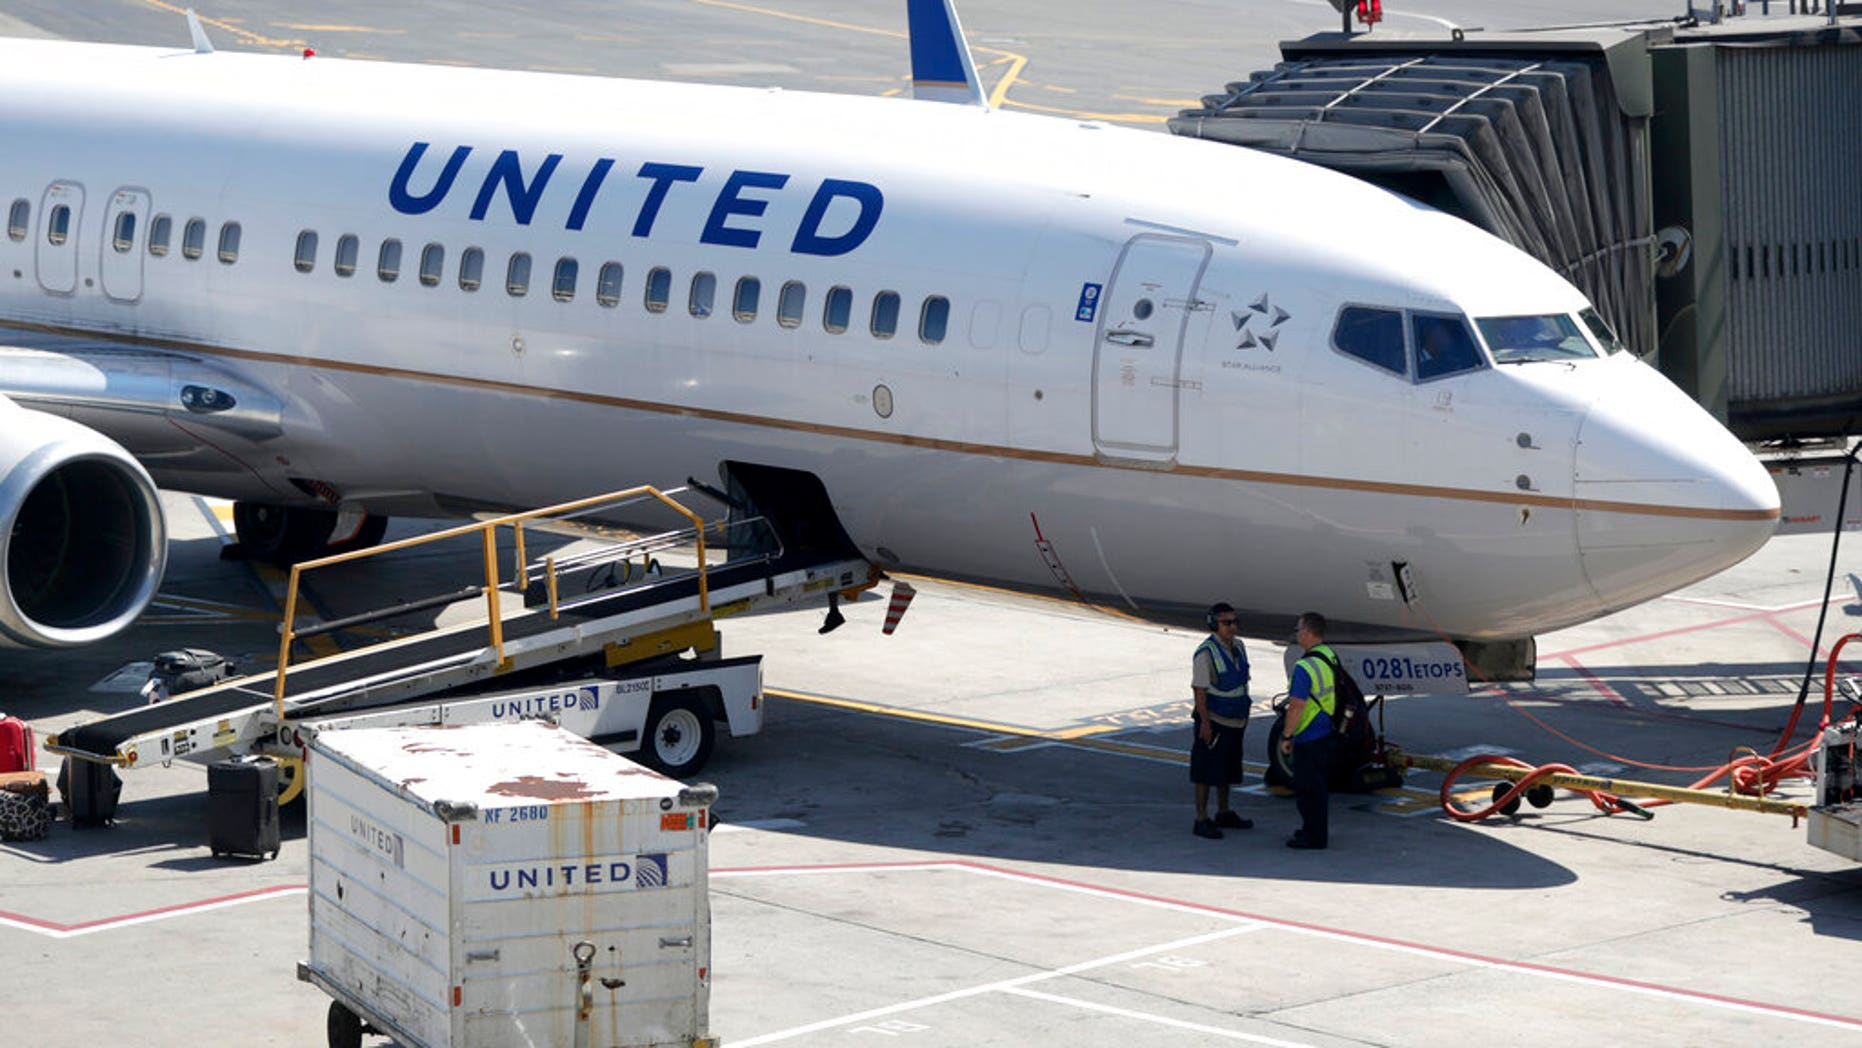 FILE: A United Airlines commercial jet sits at a gate at Terminal C of Newark Liberty International Airport in Newark, N.J.